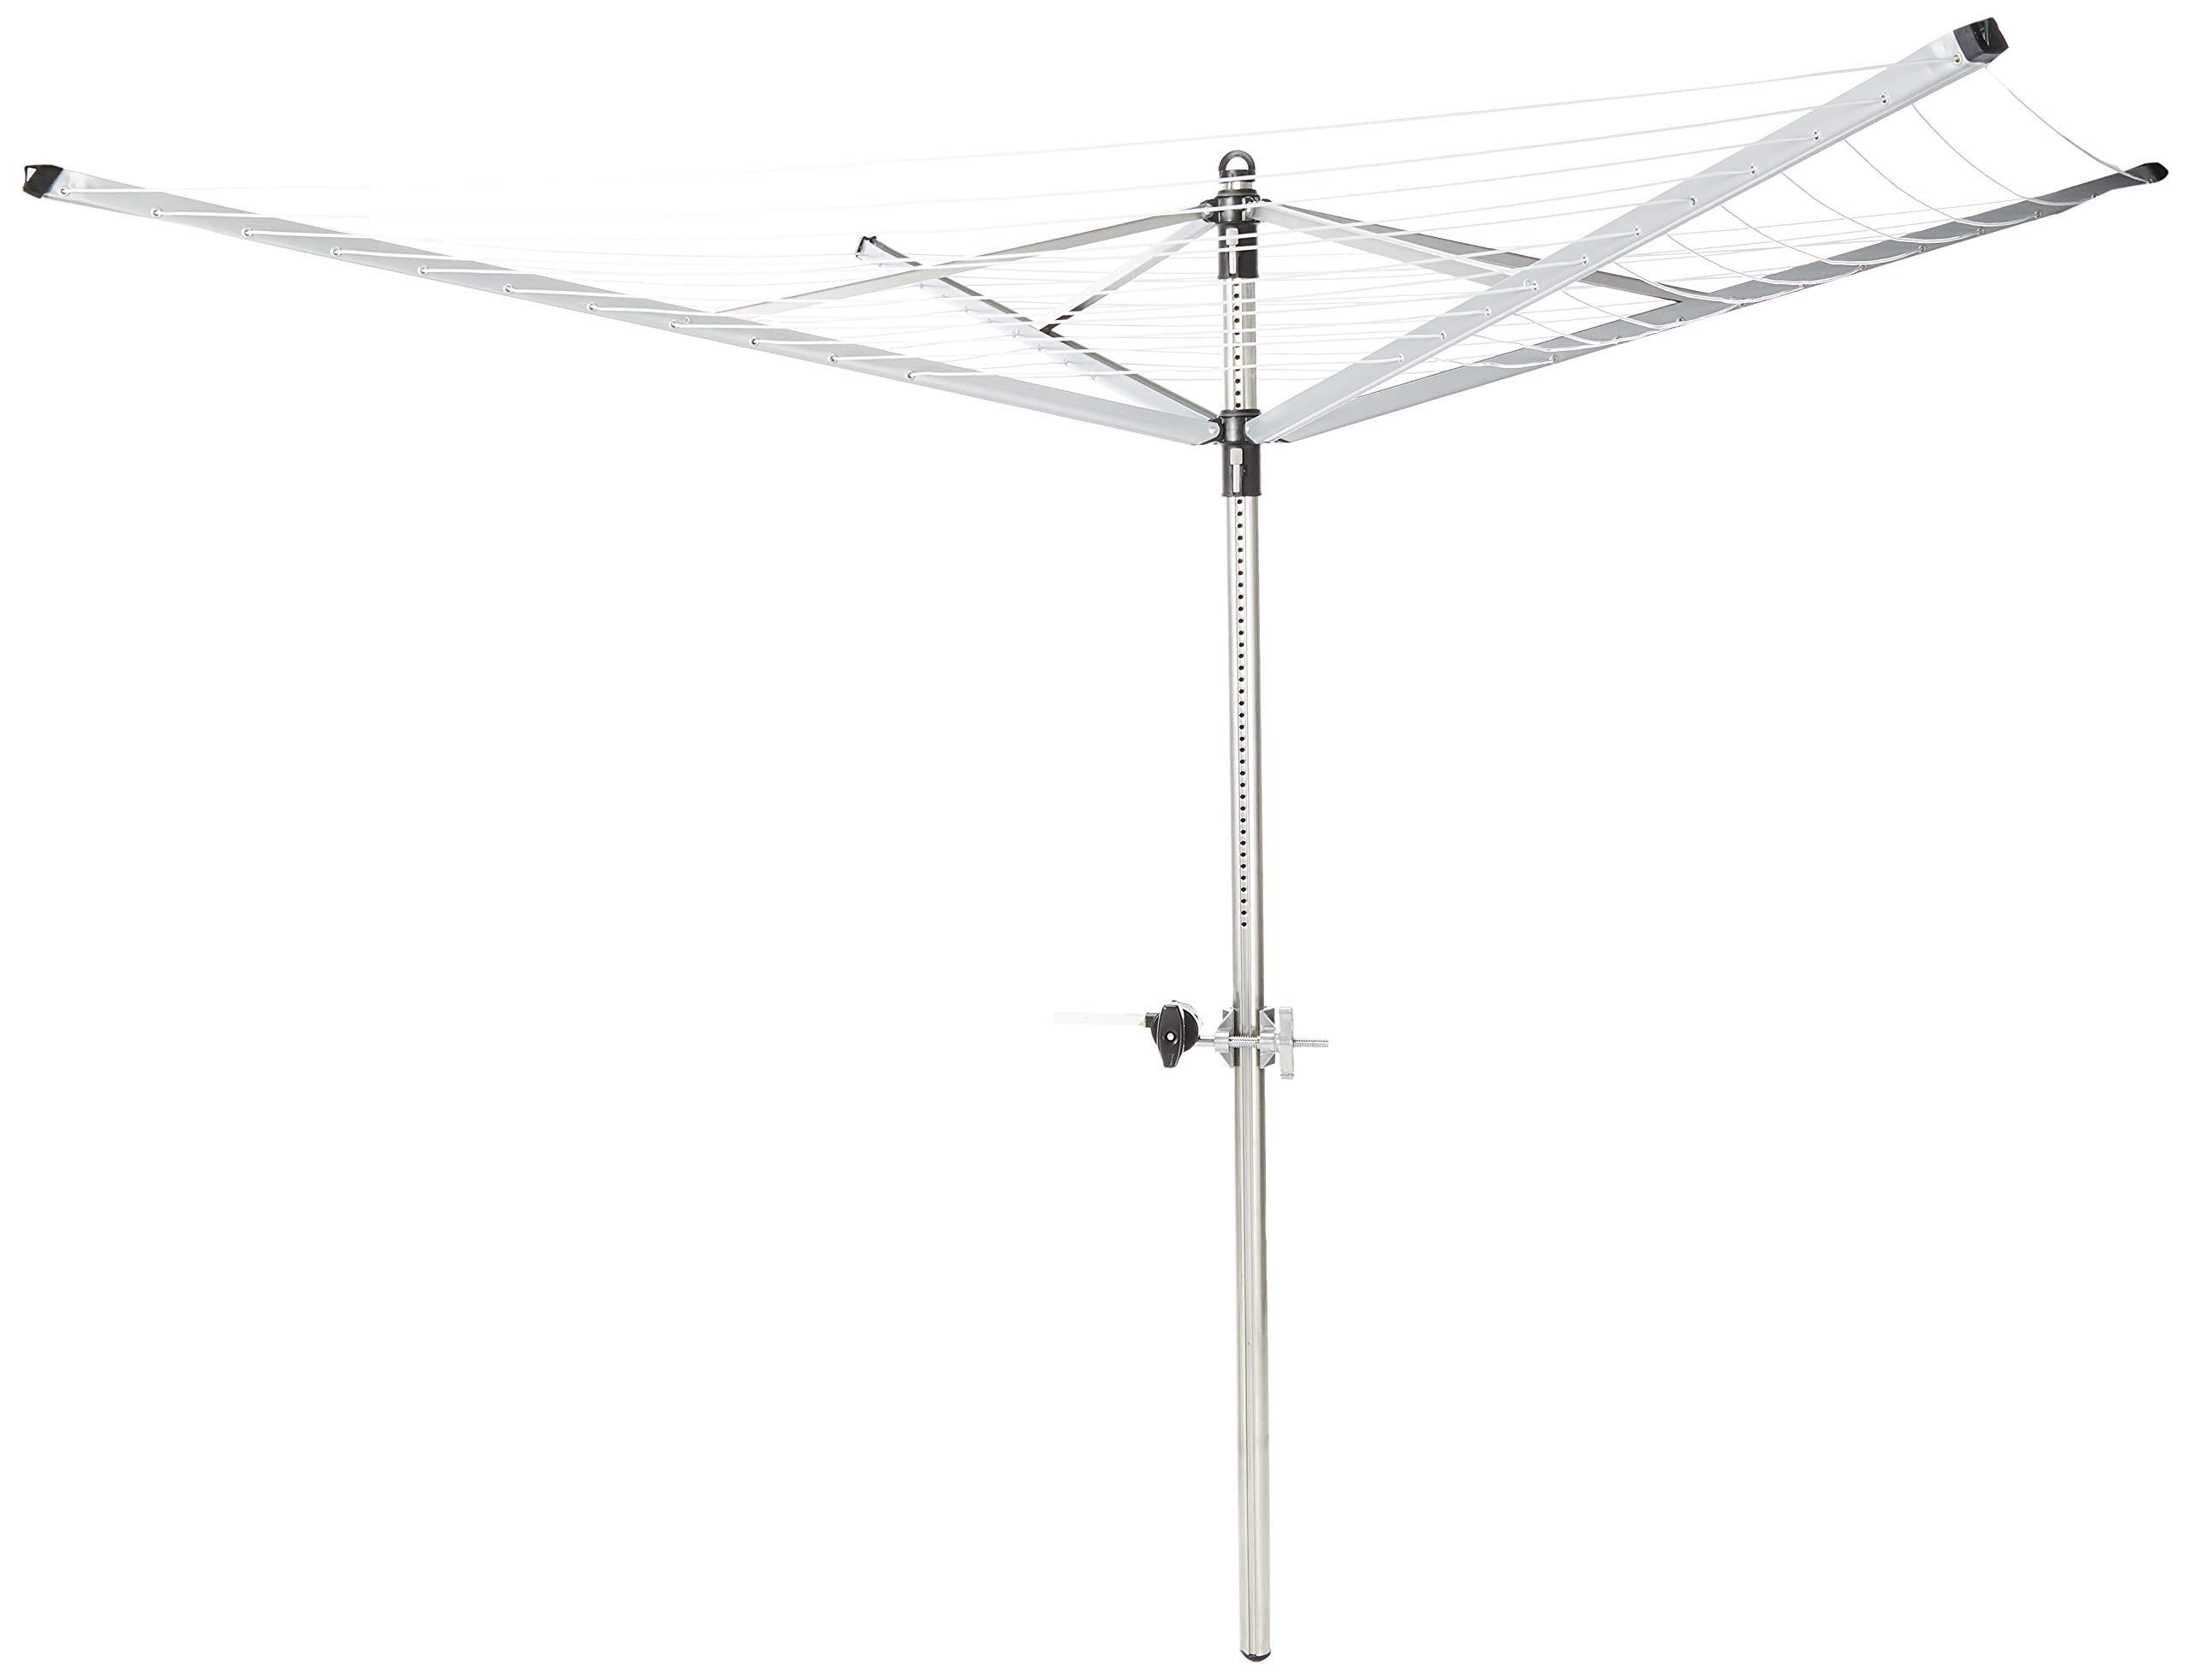 Brand New 4 Arm Outdoor Foldable Clothes line 45 Rotary Clothing Line Hoist